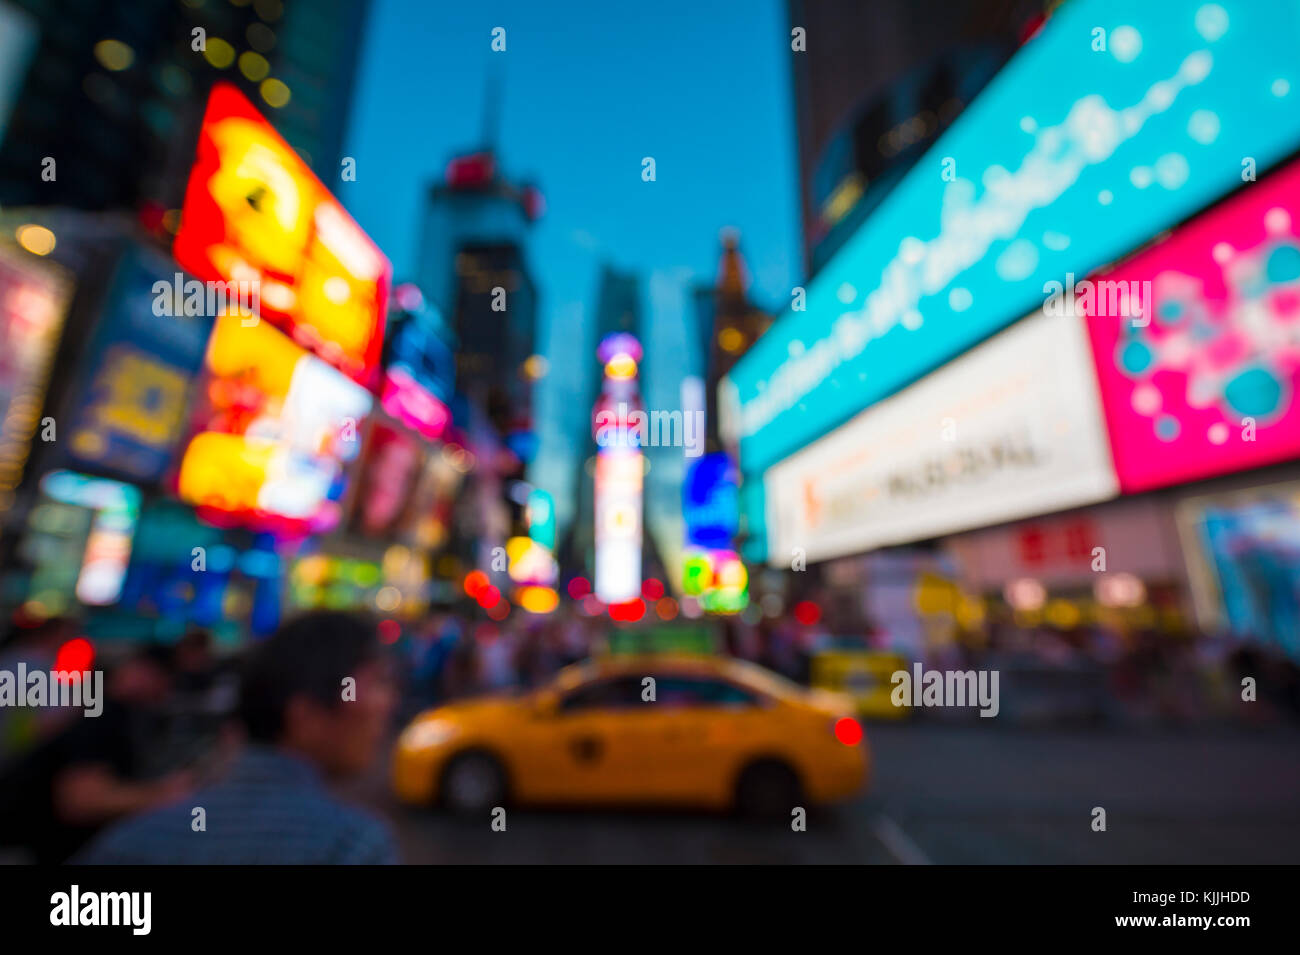 Defocus abstract view of Times Square signage, traffic, and holiday crowds in the lead-up to New Year's Eve - Stock Image